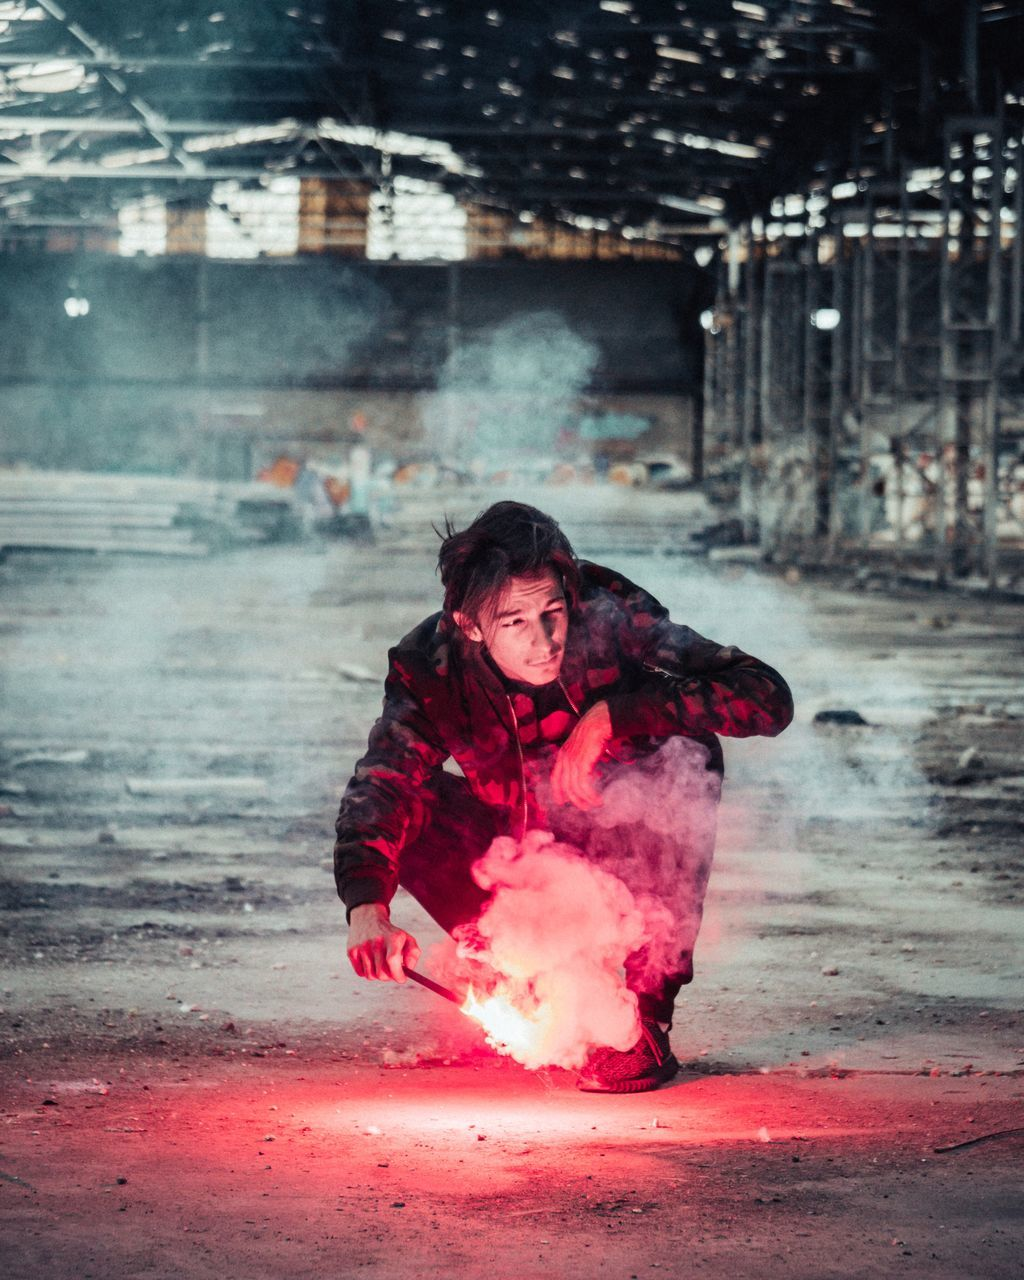 Man Holding Sparkler While Crouching In Factory